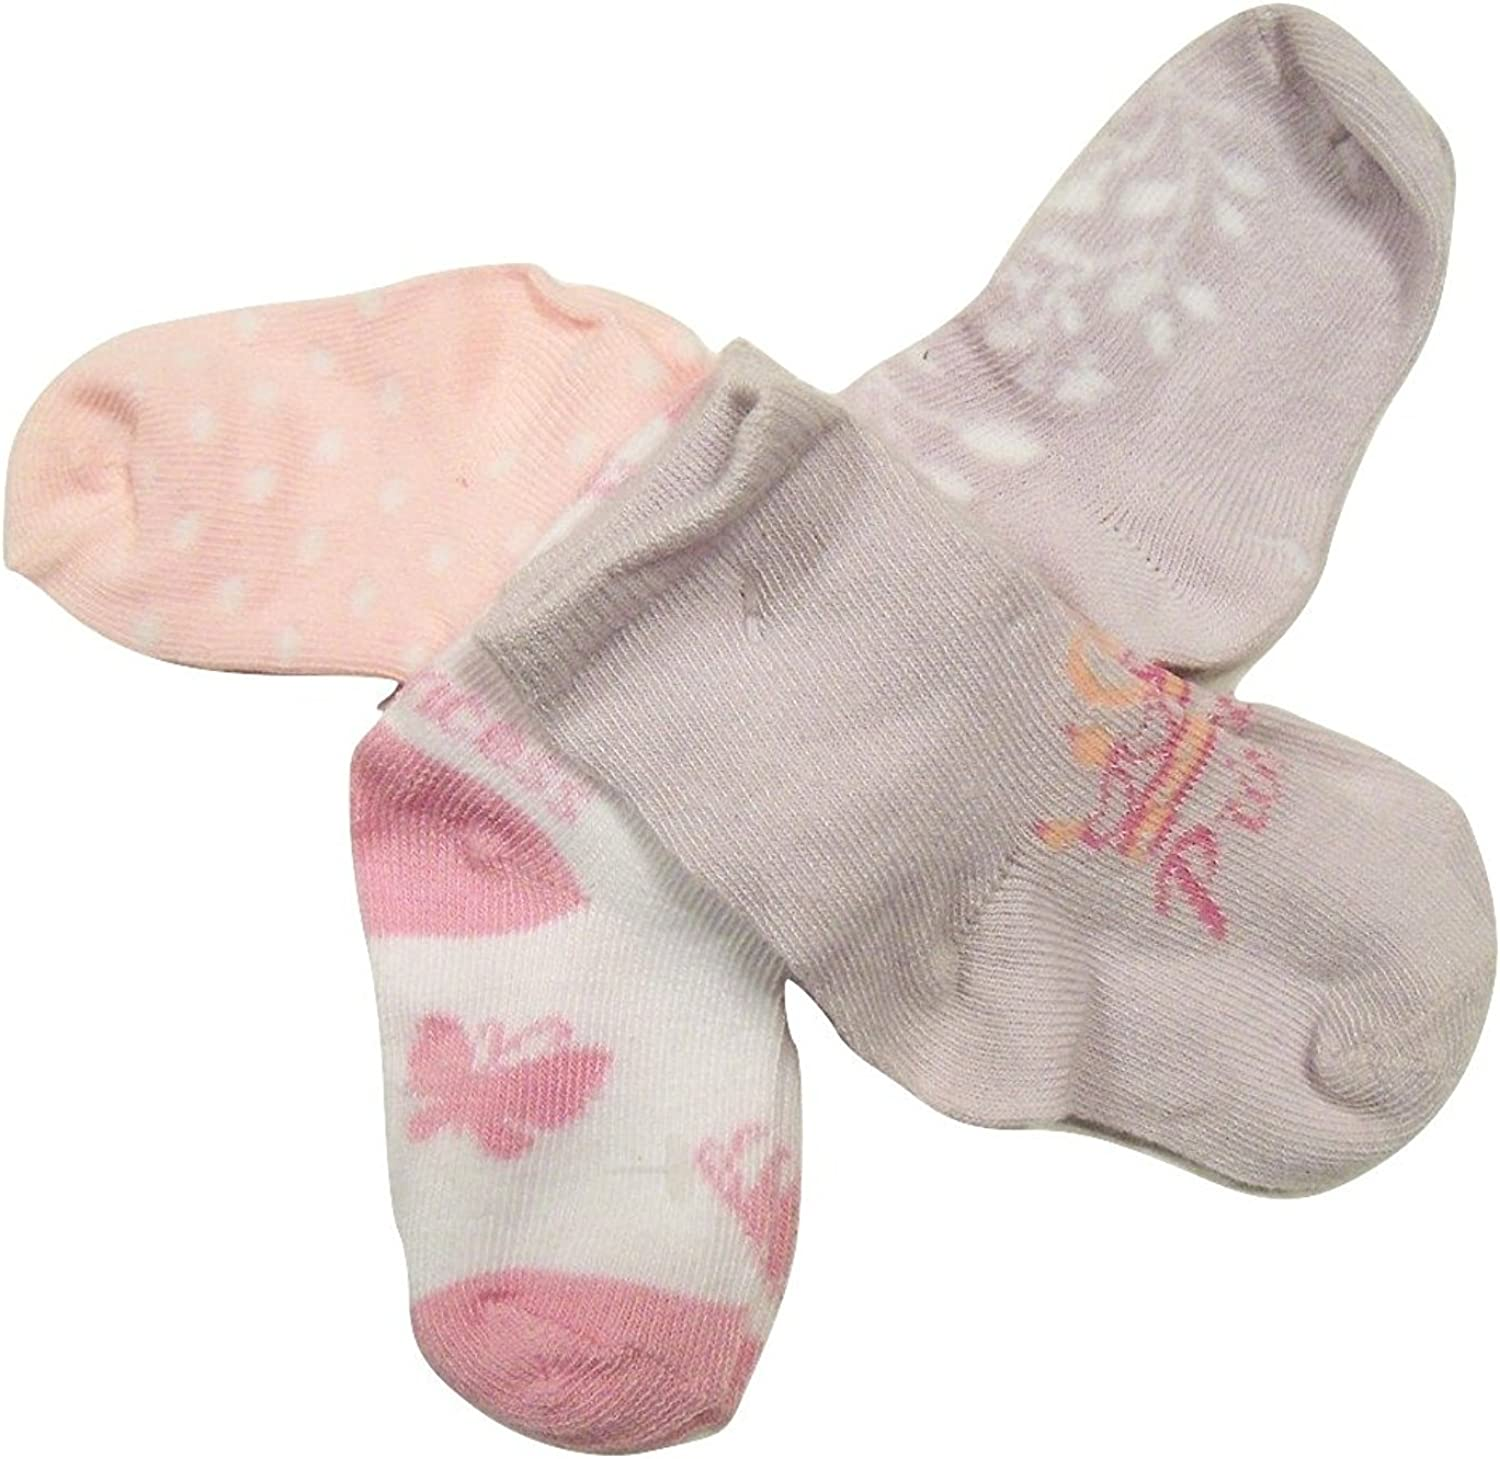 Disney Girls 4 Memphis Mall Pack New Shipping Free Shipping Infant Socks Princess ~ Months 12-24 Size